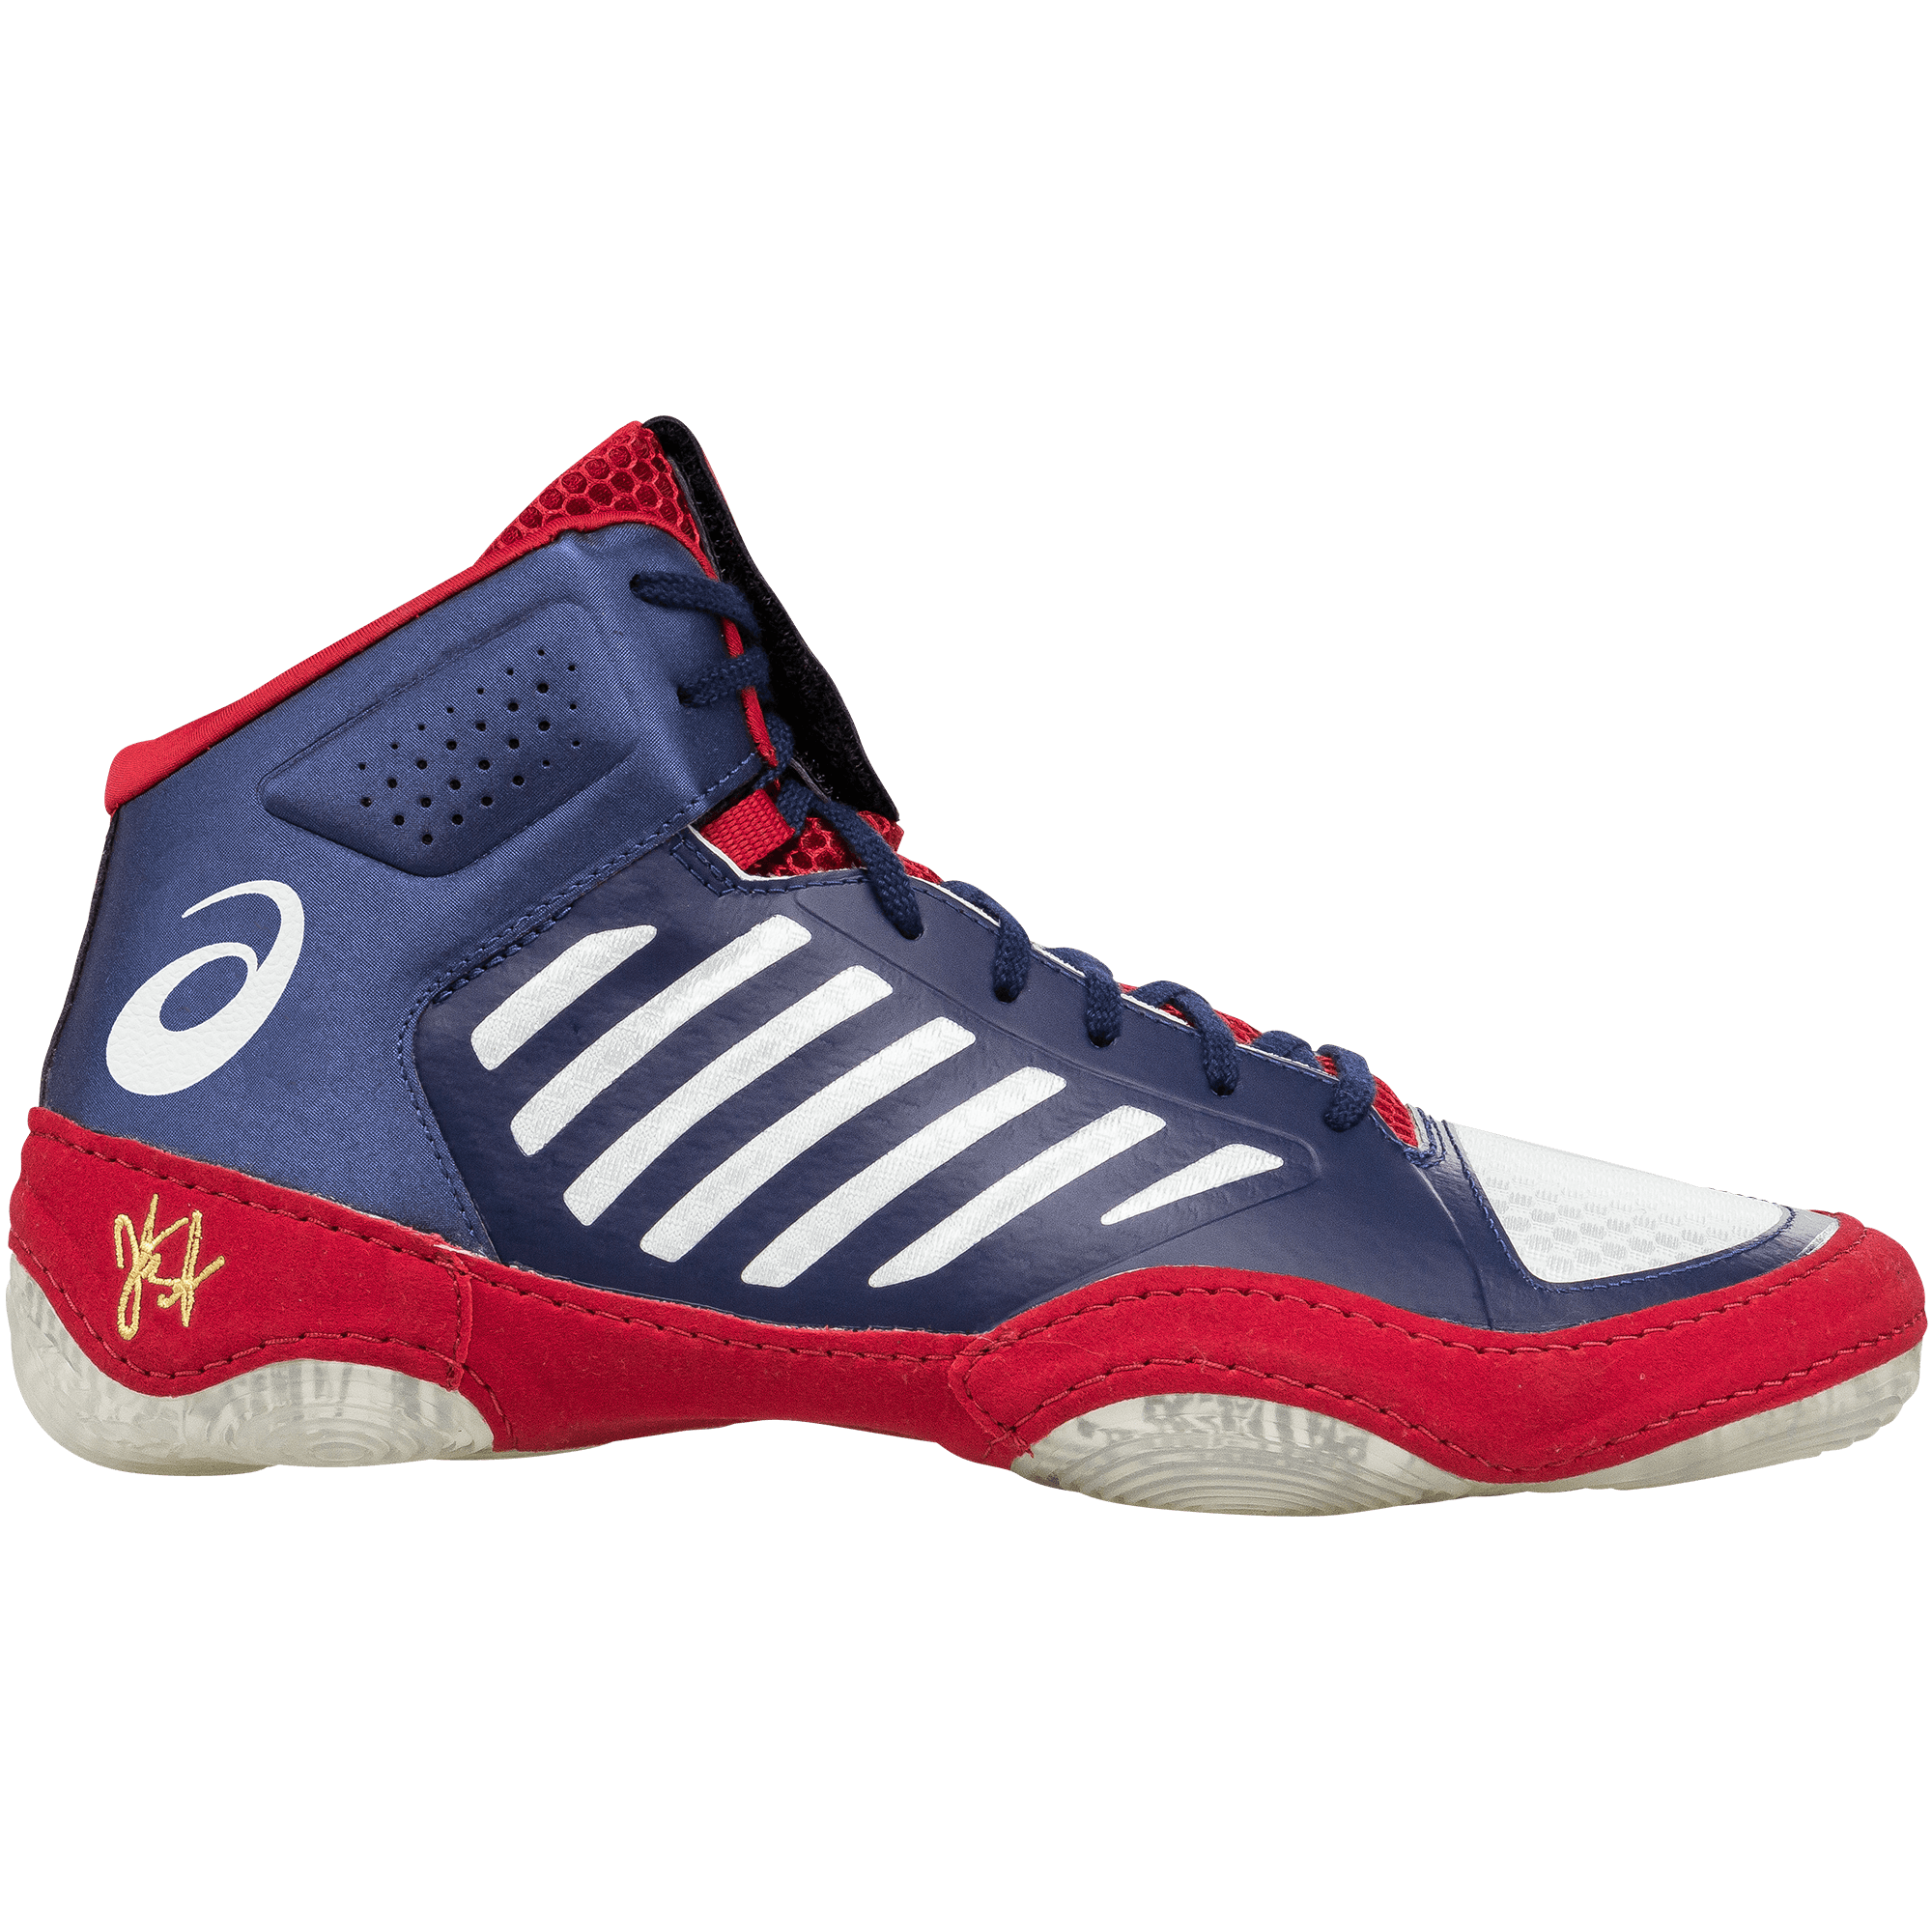 c3a5ecb4595 ... JB Elite 3 Navy Red Blue White Red insideASICS JB Elite 3 Navy Red Blue  White Red topASICS JB Elite 3 Navy Red Blue White Red frontASICS JB Elite 3  Navy ...